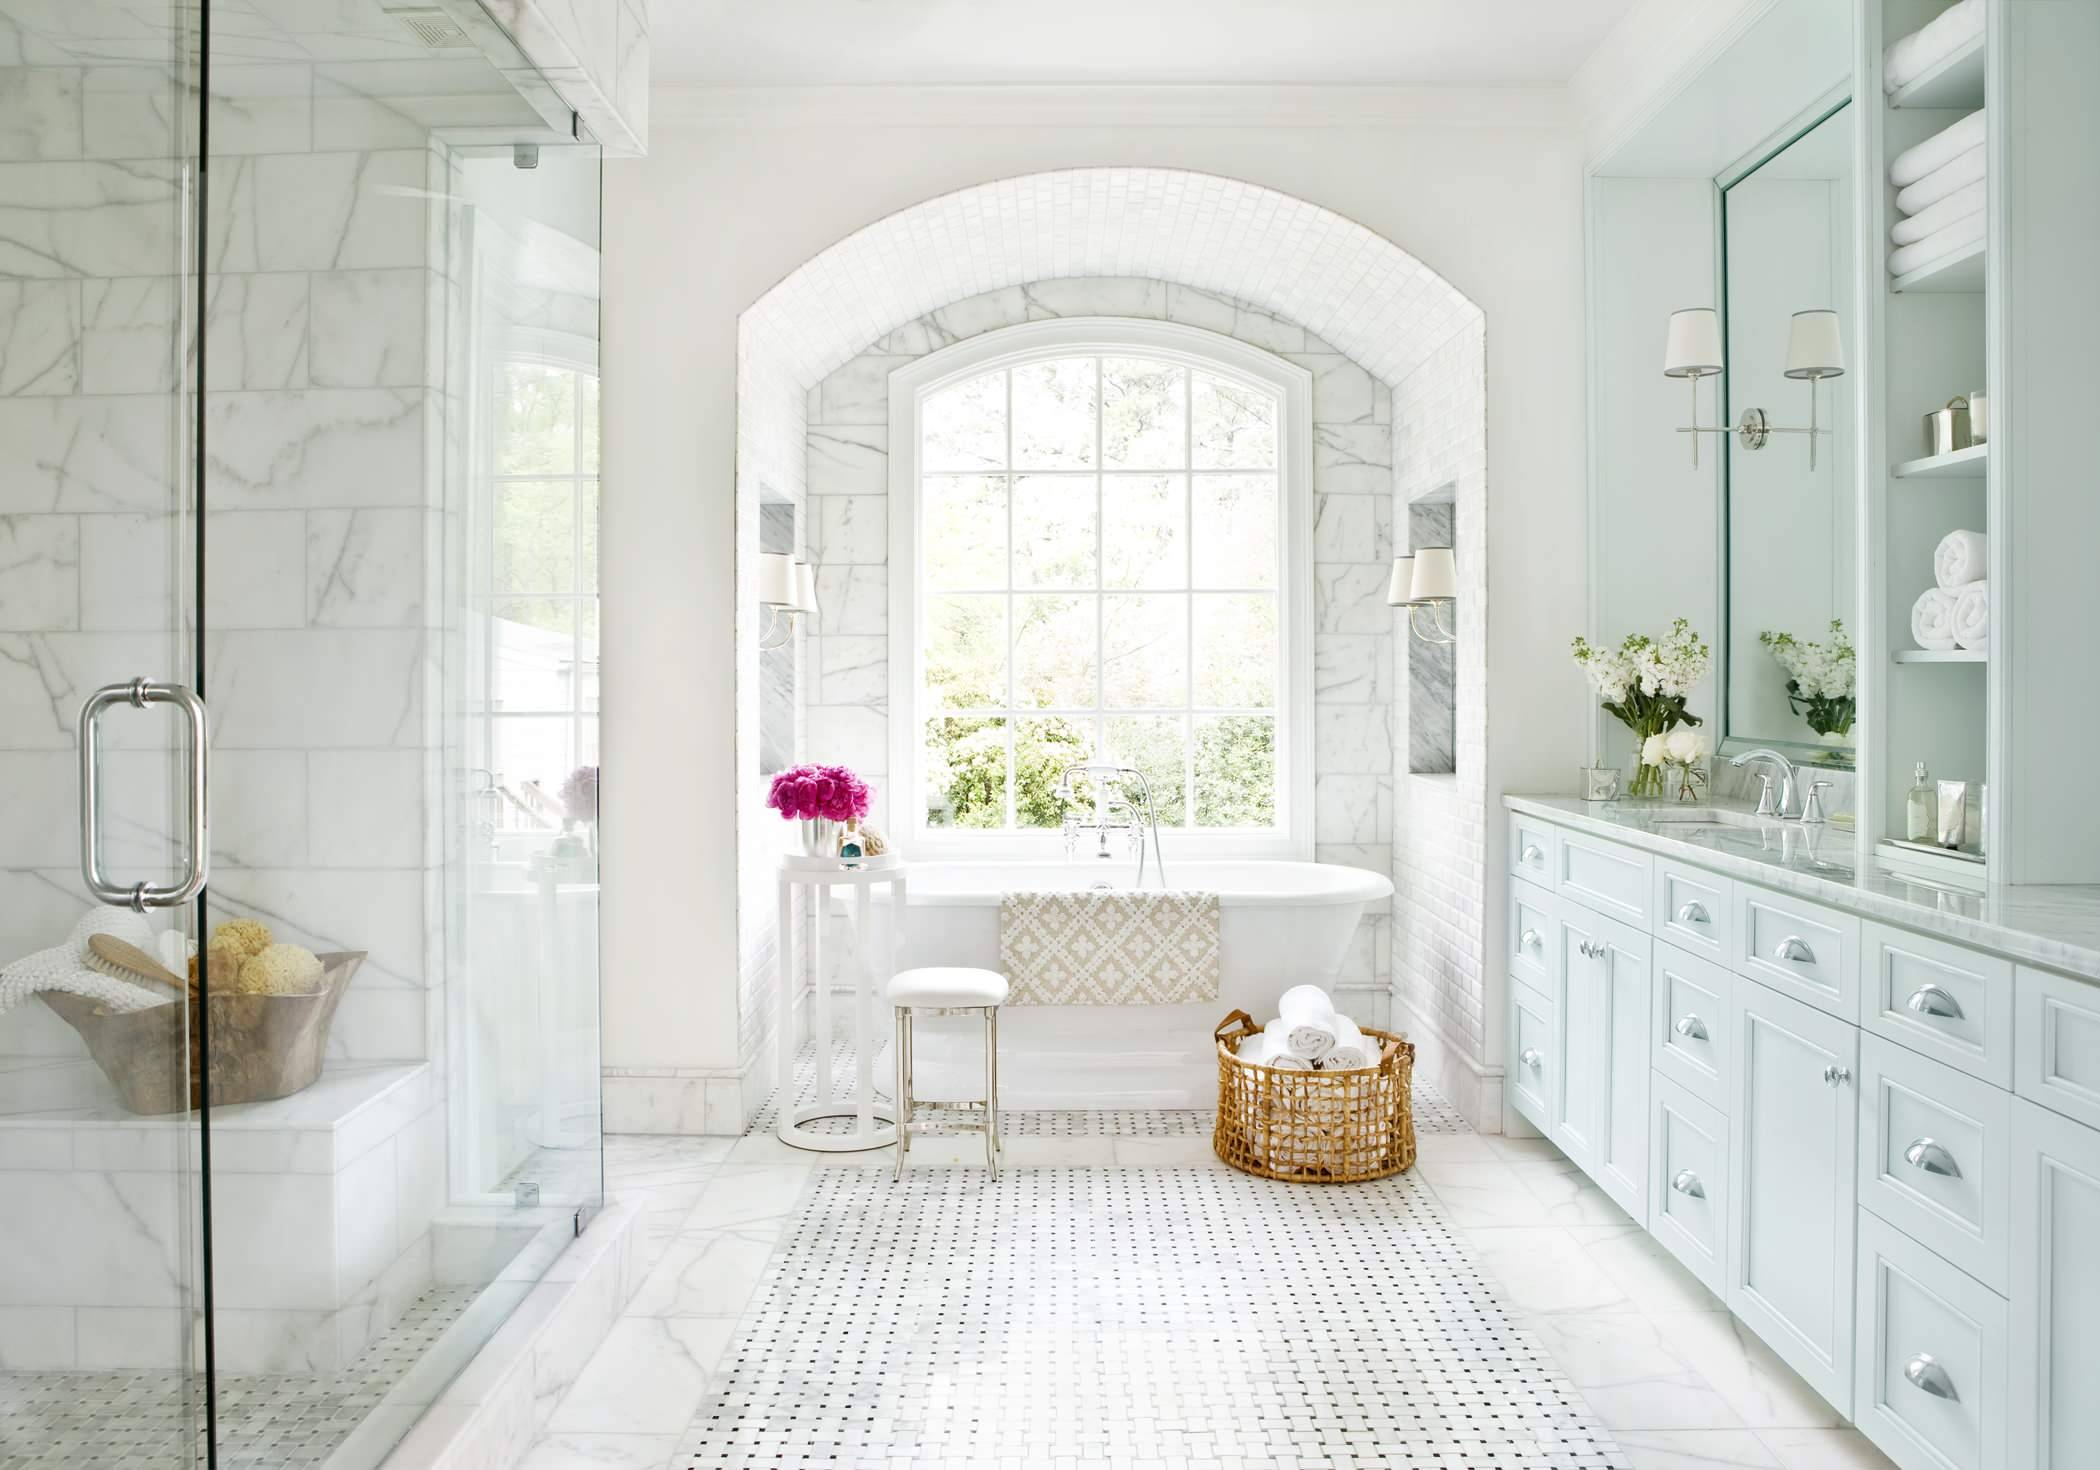 Lovely-little-arched-aclove-for-the-modern-traditional-bathroom-in-white-that-holds-the-bathtub-62834